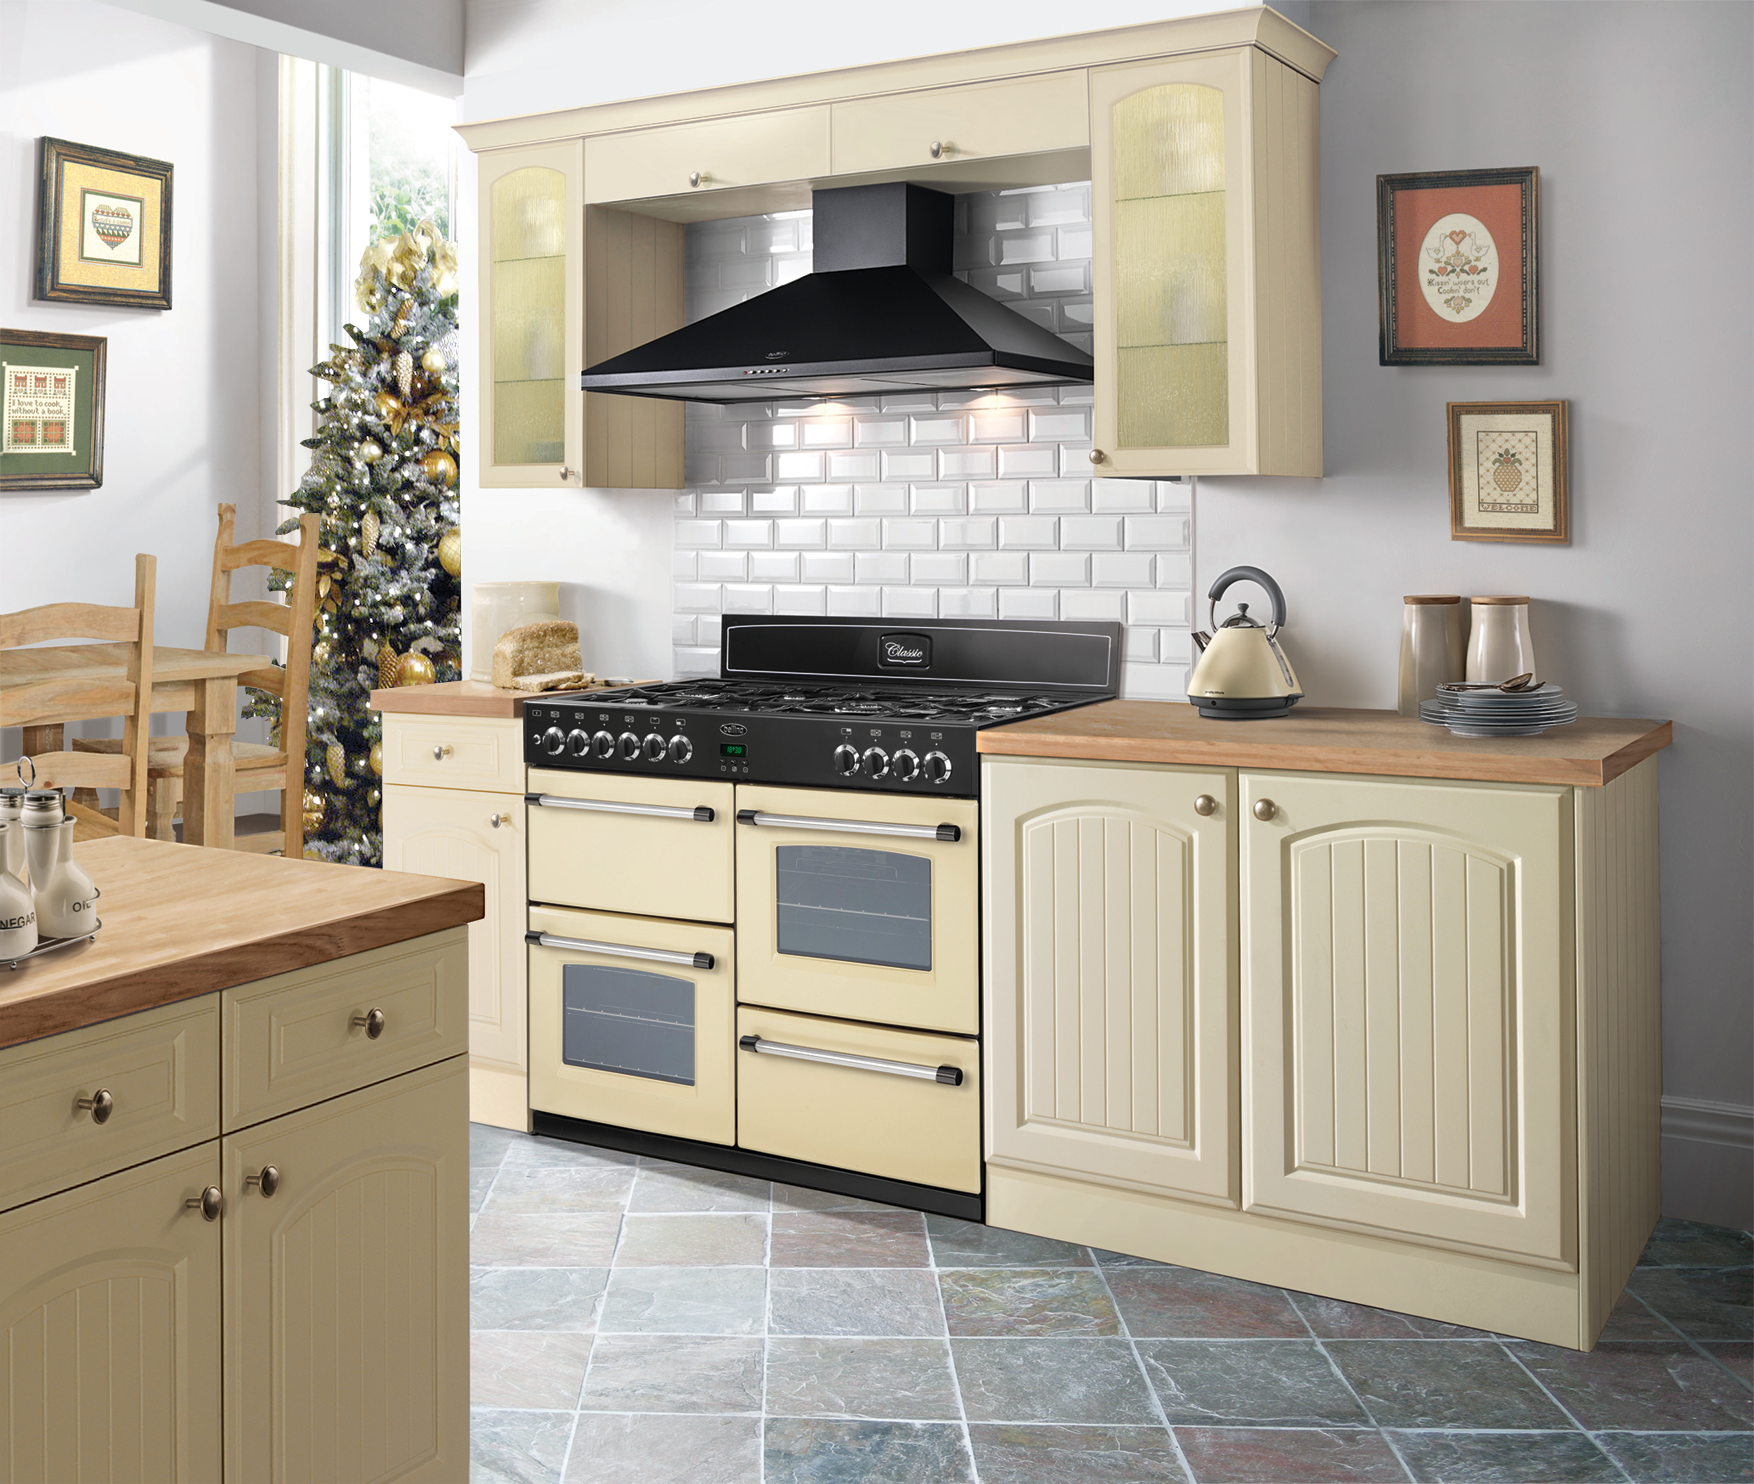 Cream Kitchen Black Worktops: Belling Classic Range Cooker In An Inspirational Cream